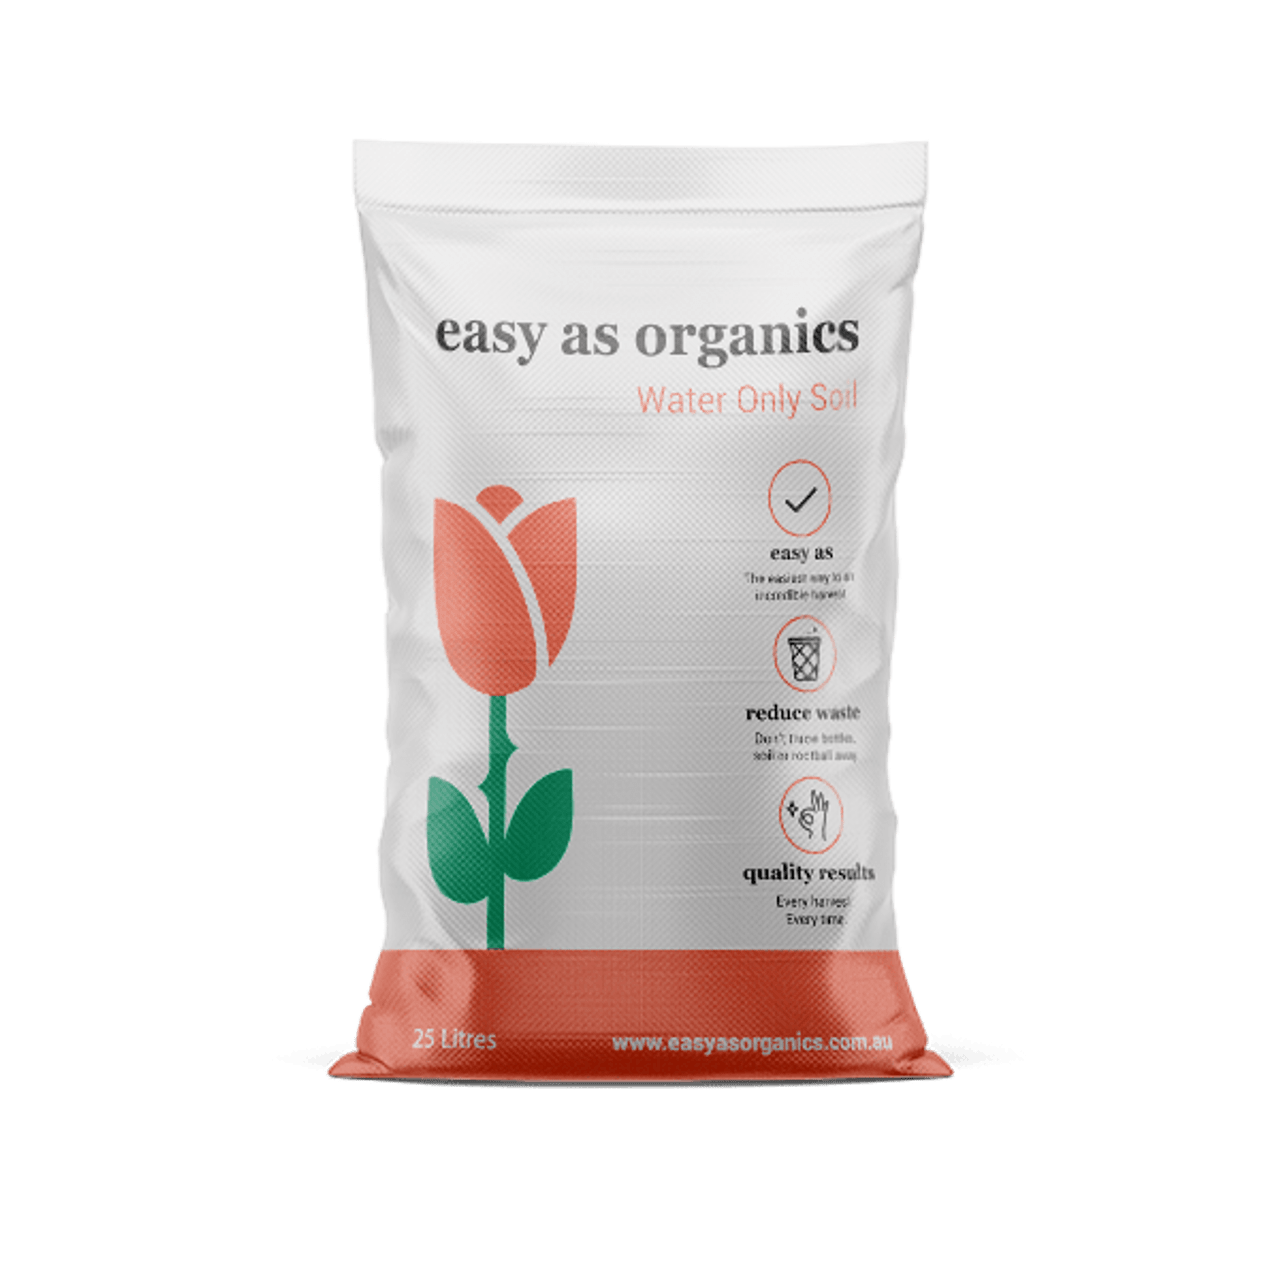 EASY AS ORGANICS WATER ONLY SOIL 25 LITRE